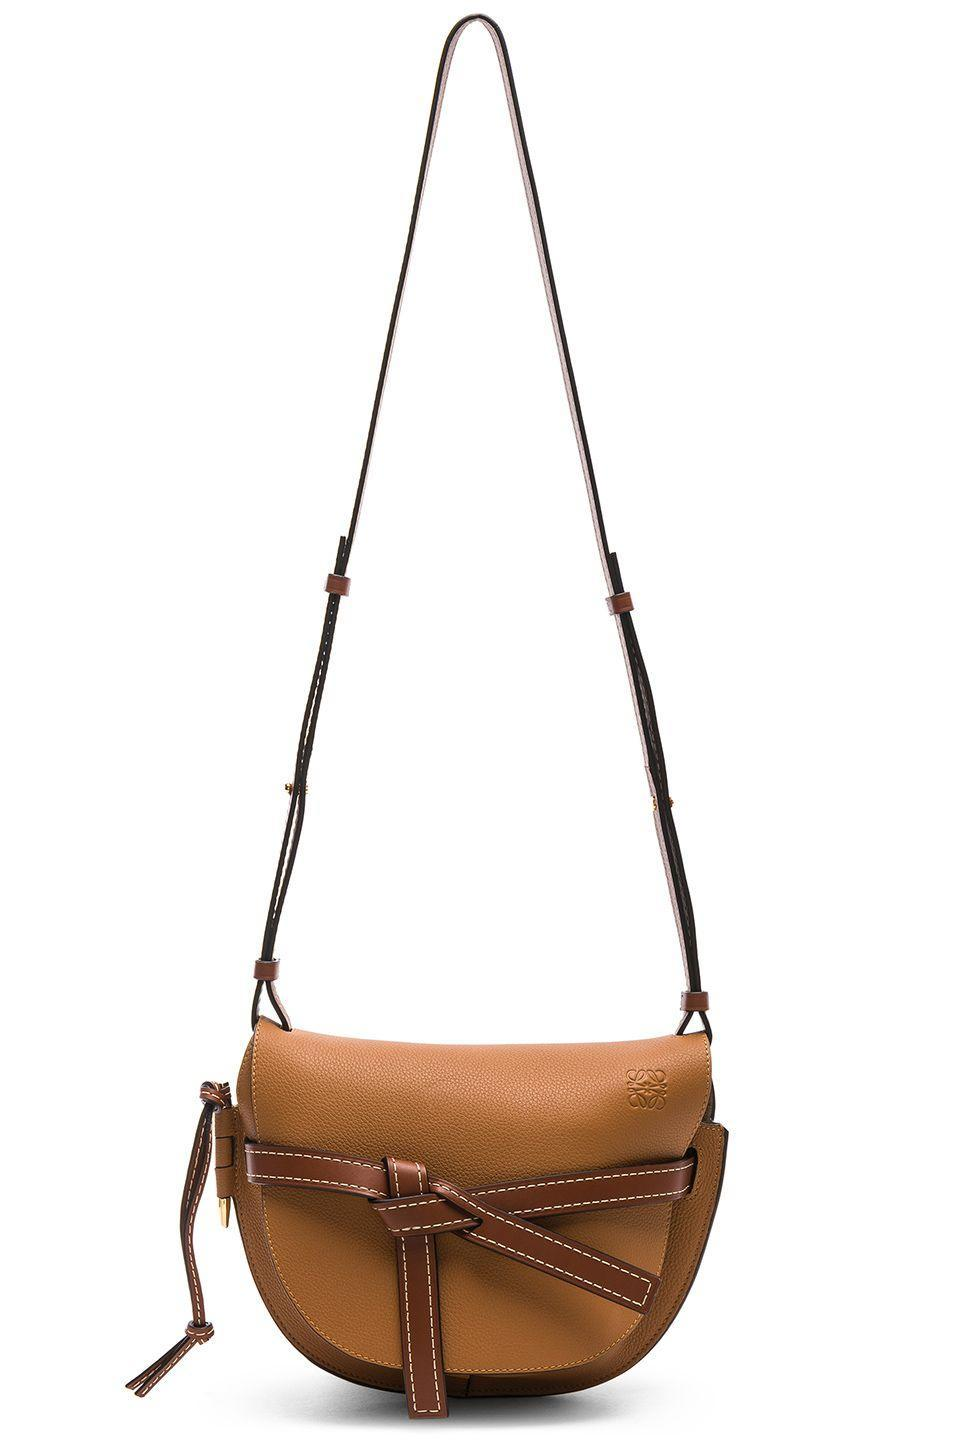 Finally, add a cool bag in shades of tan and brown like this fashion-girl staple from Loewe.